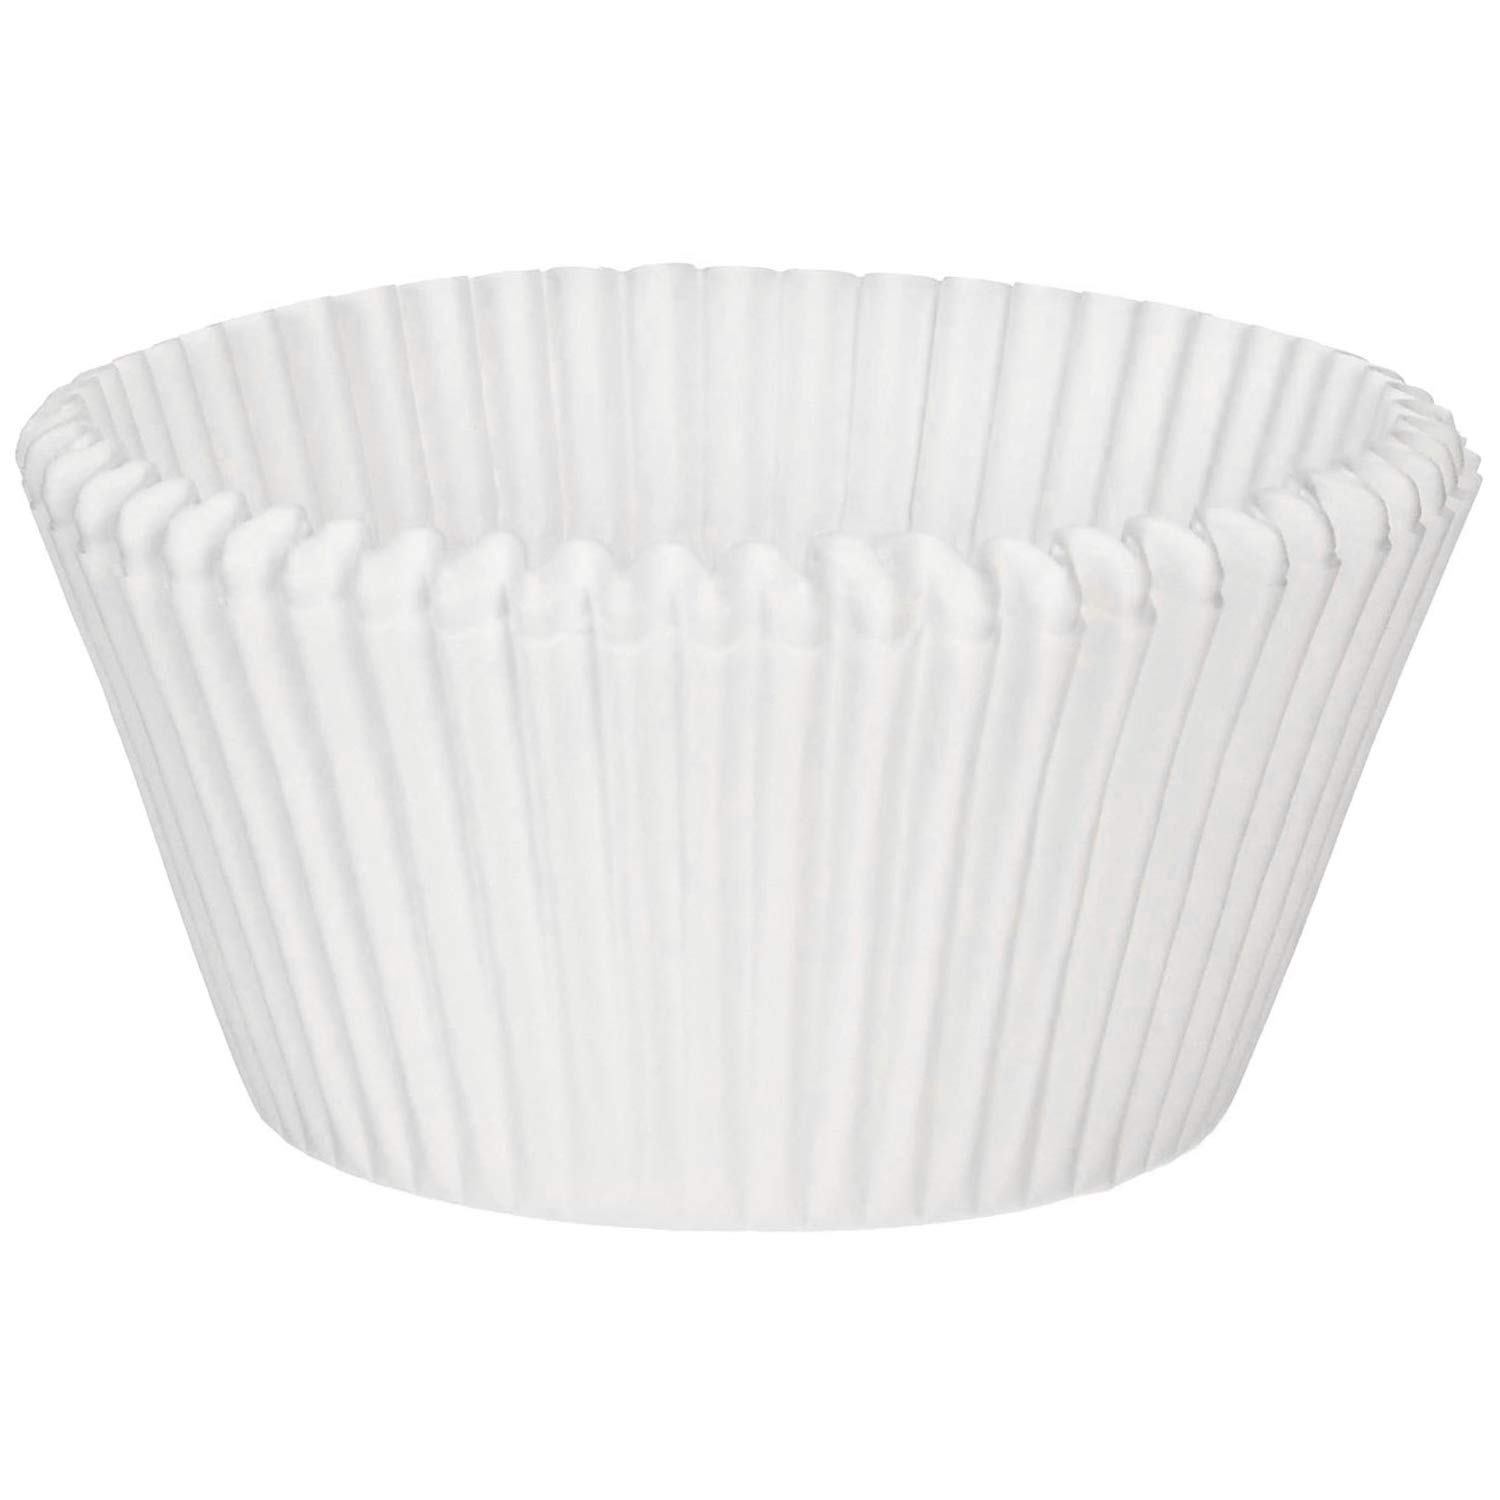 Norpro Giant Muffin Cups, White, Pack of 1000